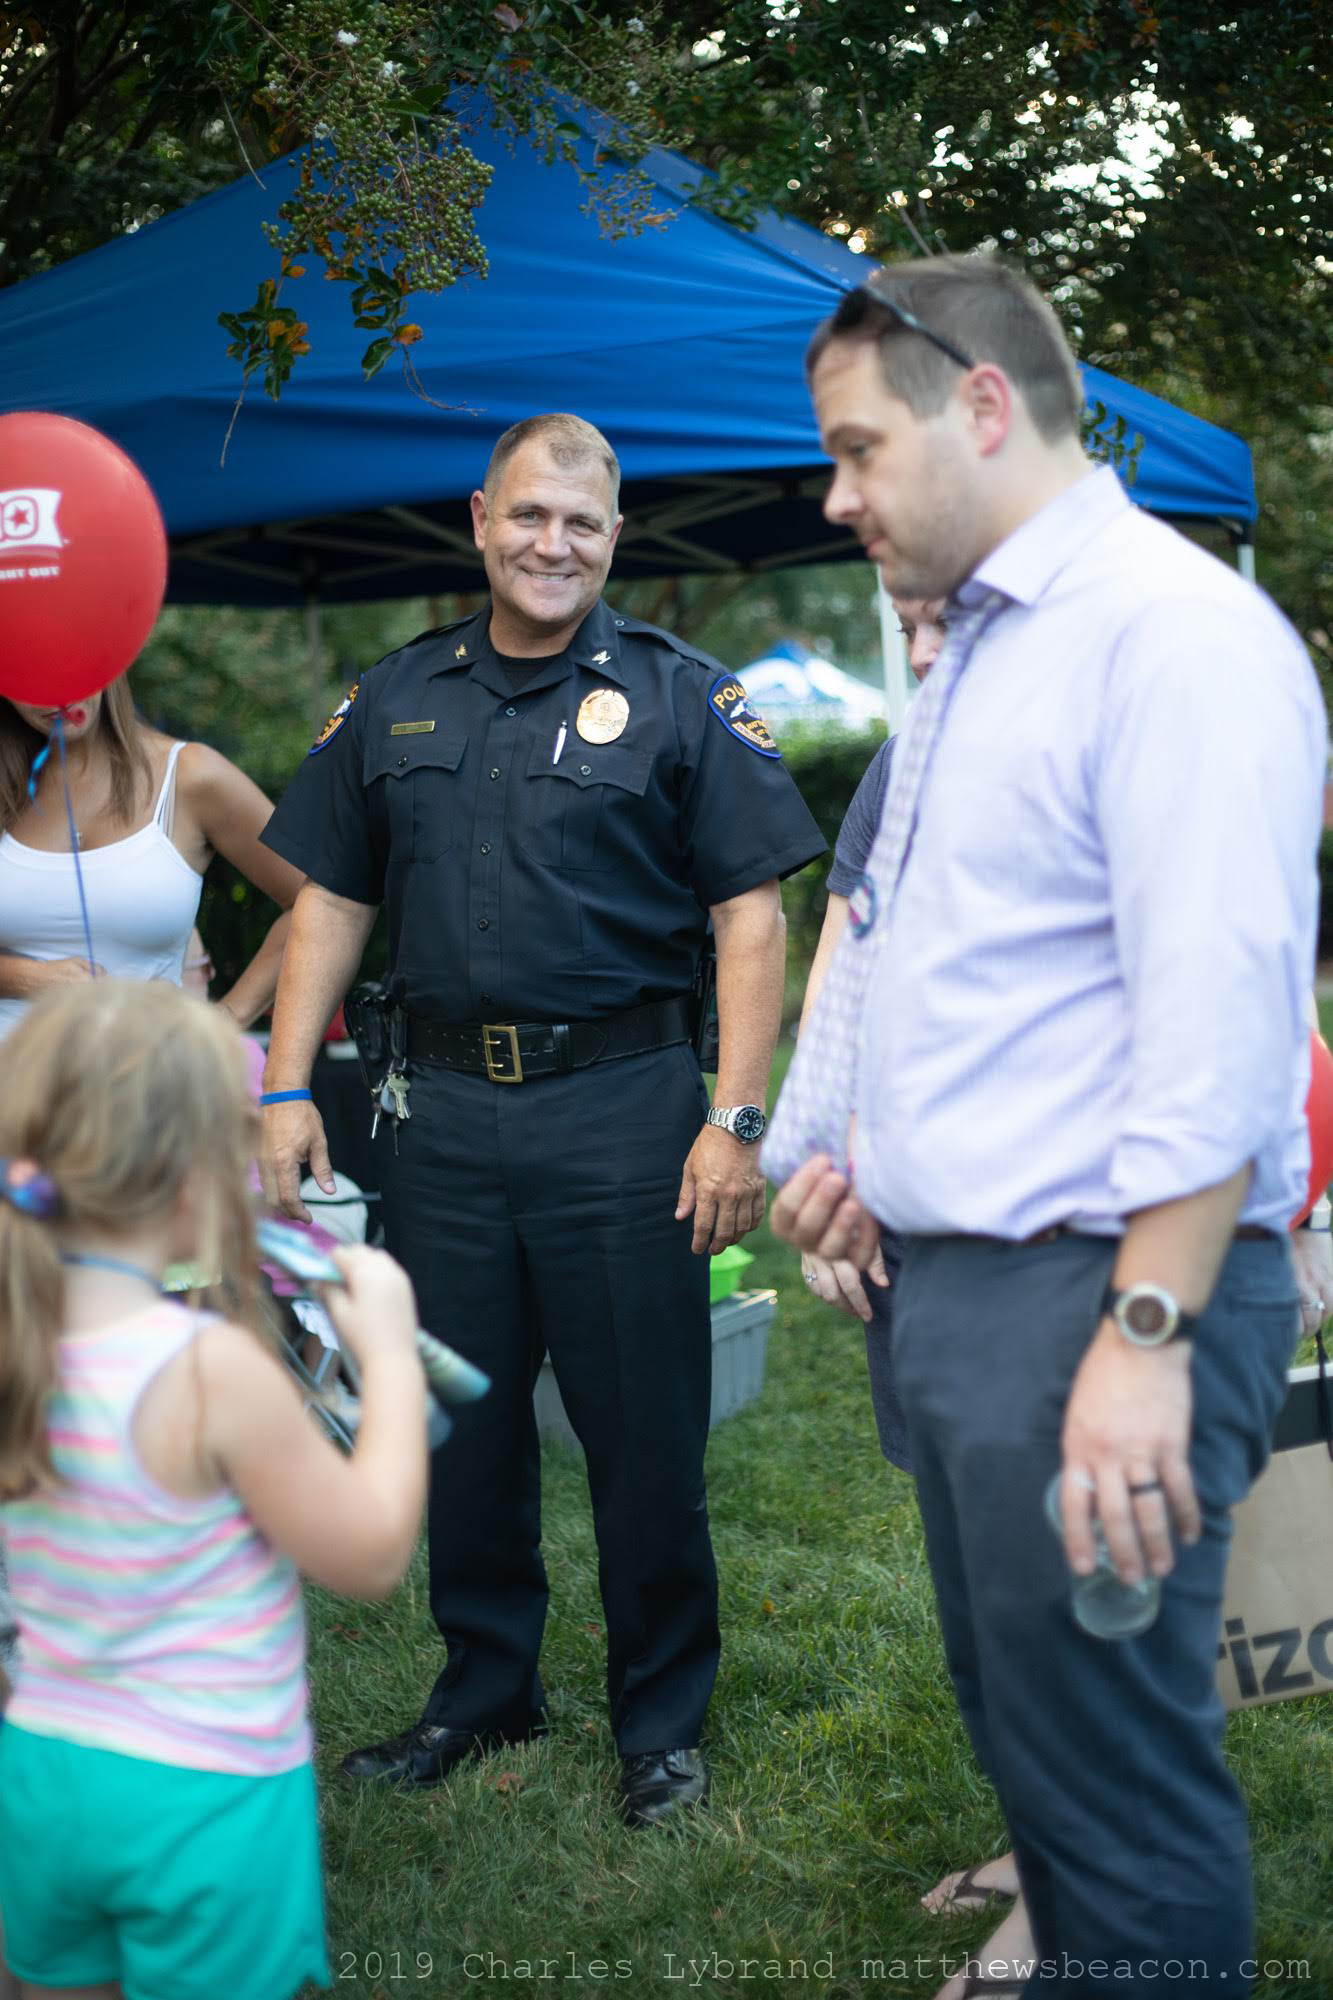 beacon national night out chief.jpg